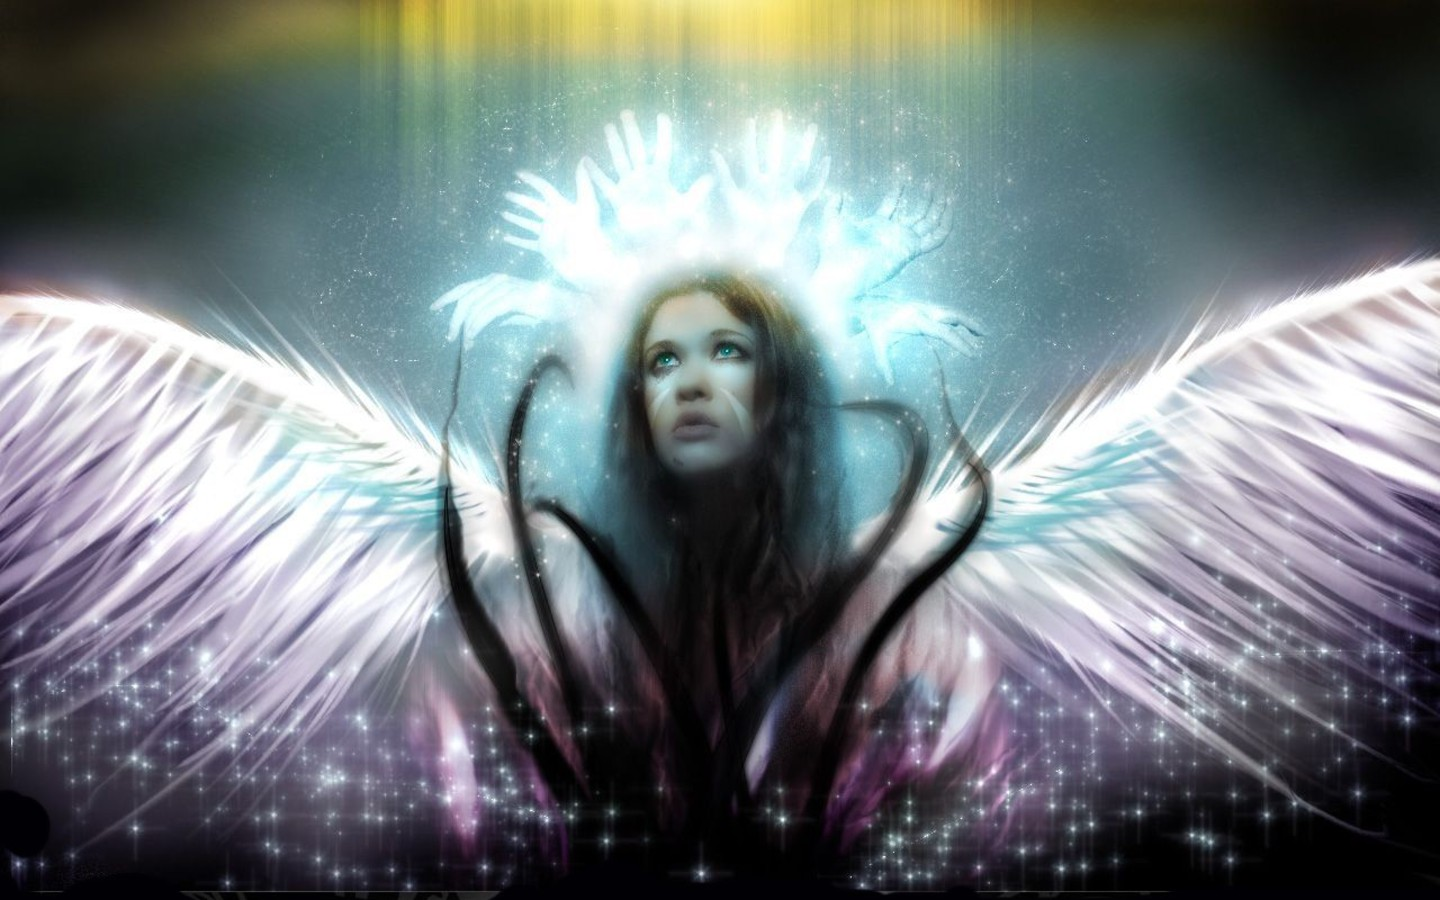 Due time. Beautiful fantasy angels